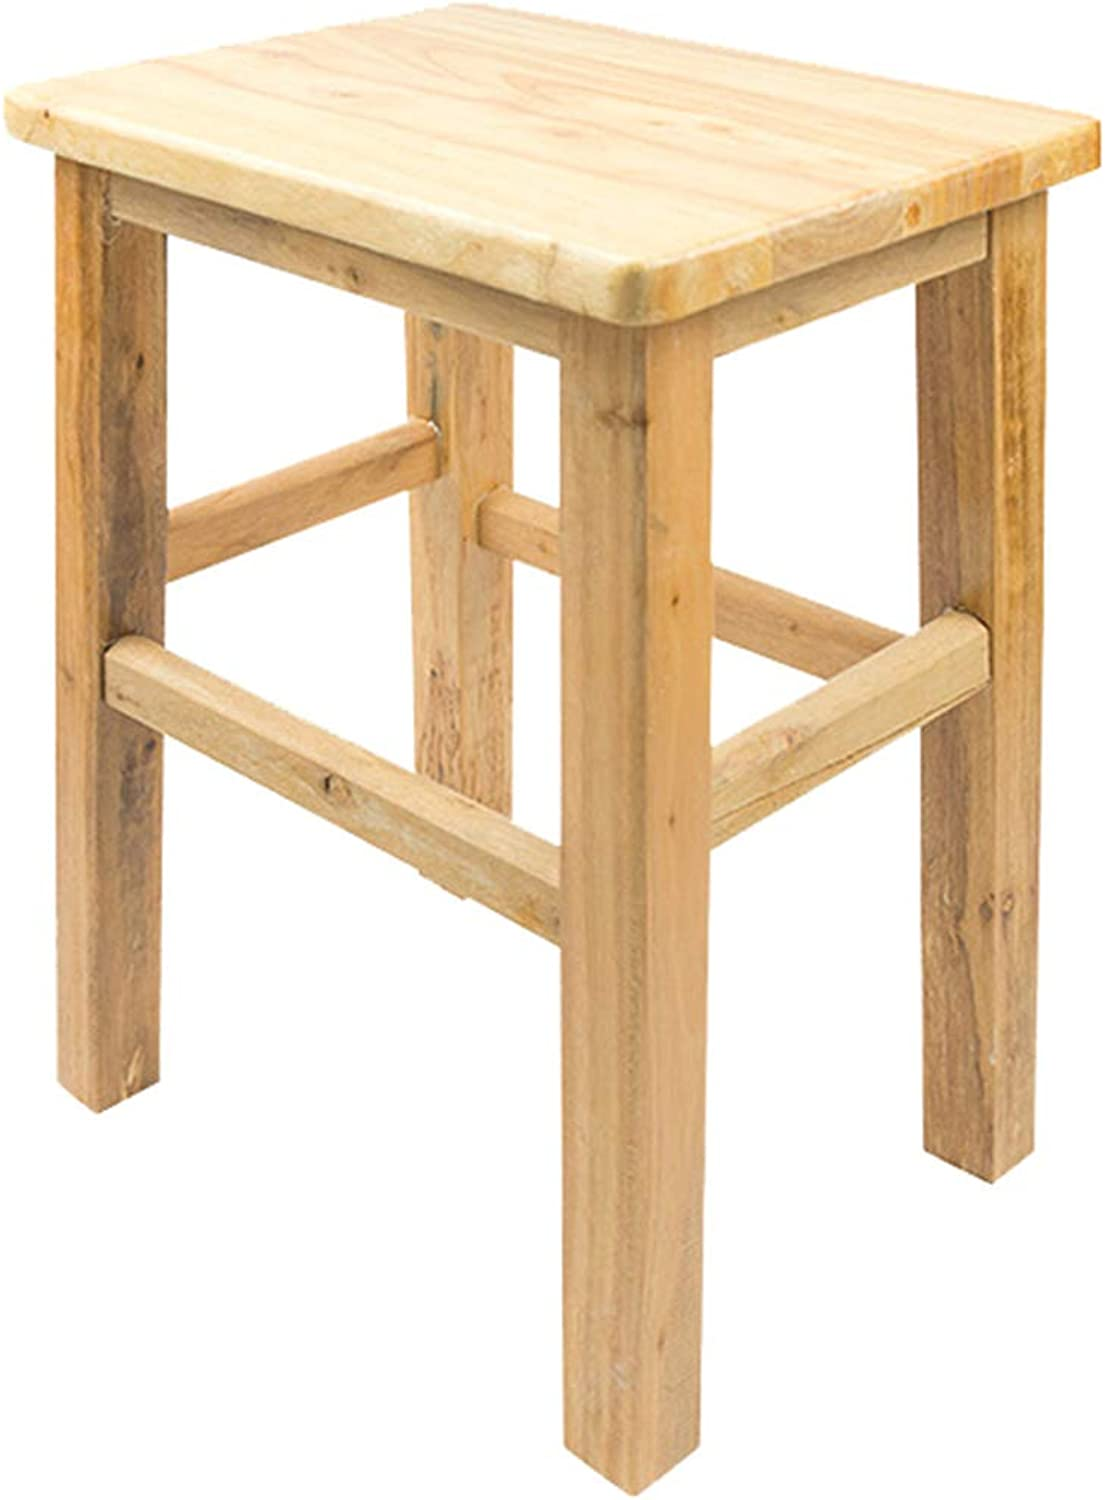 Wooden Dinning Stool,Footstool,Anti-Slip Vanity Stool,Solid Wood Meterial Stable and Durable,Great for Kitchen,Bathroom,Bedroom,Kids or Adults(34x25x44cm),Woodcolor